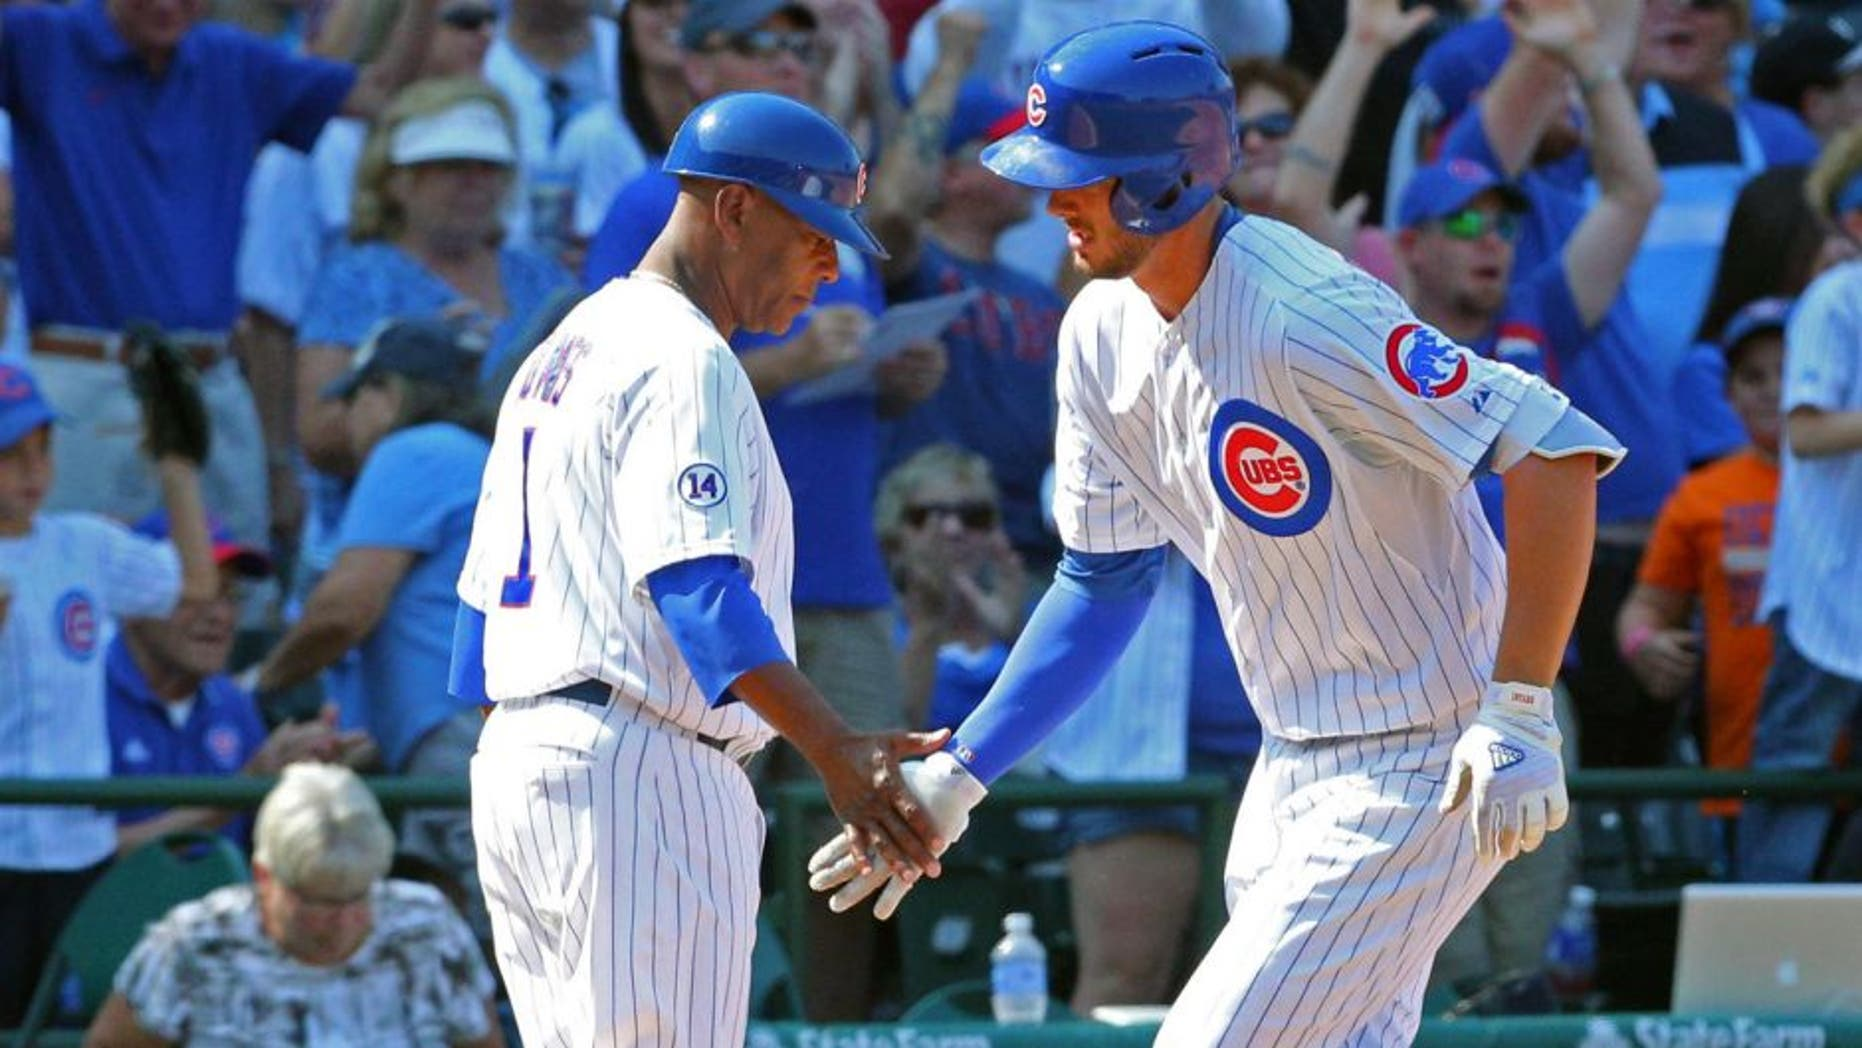 Aug 23, 2015; Chicago, IL, USA; Chicago Cubs third baseman Kris Bryant (17) is congratulated for hitting a home run by third base coach Gary Jones (1) during the sixth inning against the Atlanta Braves at Wrigley Field. Mandatory Credit: Dennis Wierzbicki-USA TODAY Sports